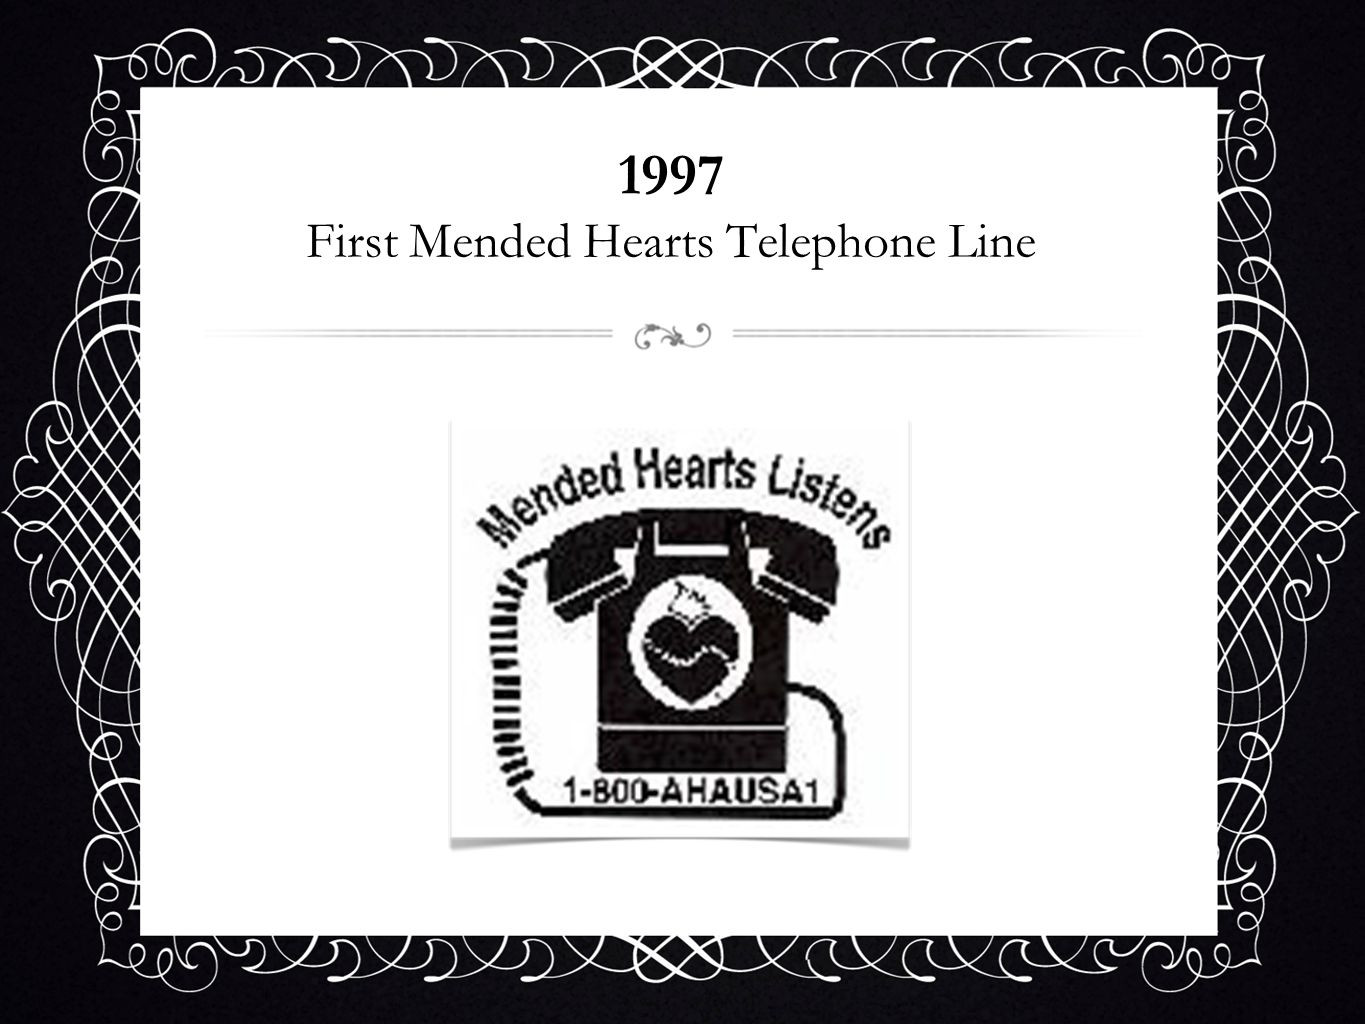 1997 First Mended Hearts Telephone Line